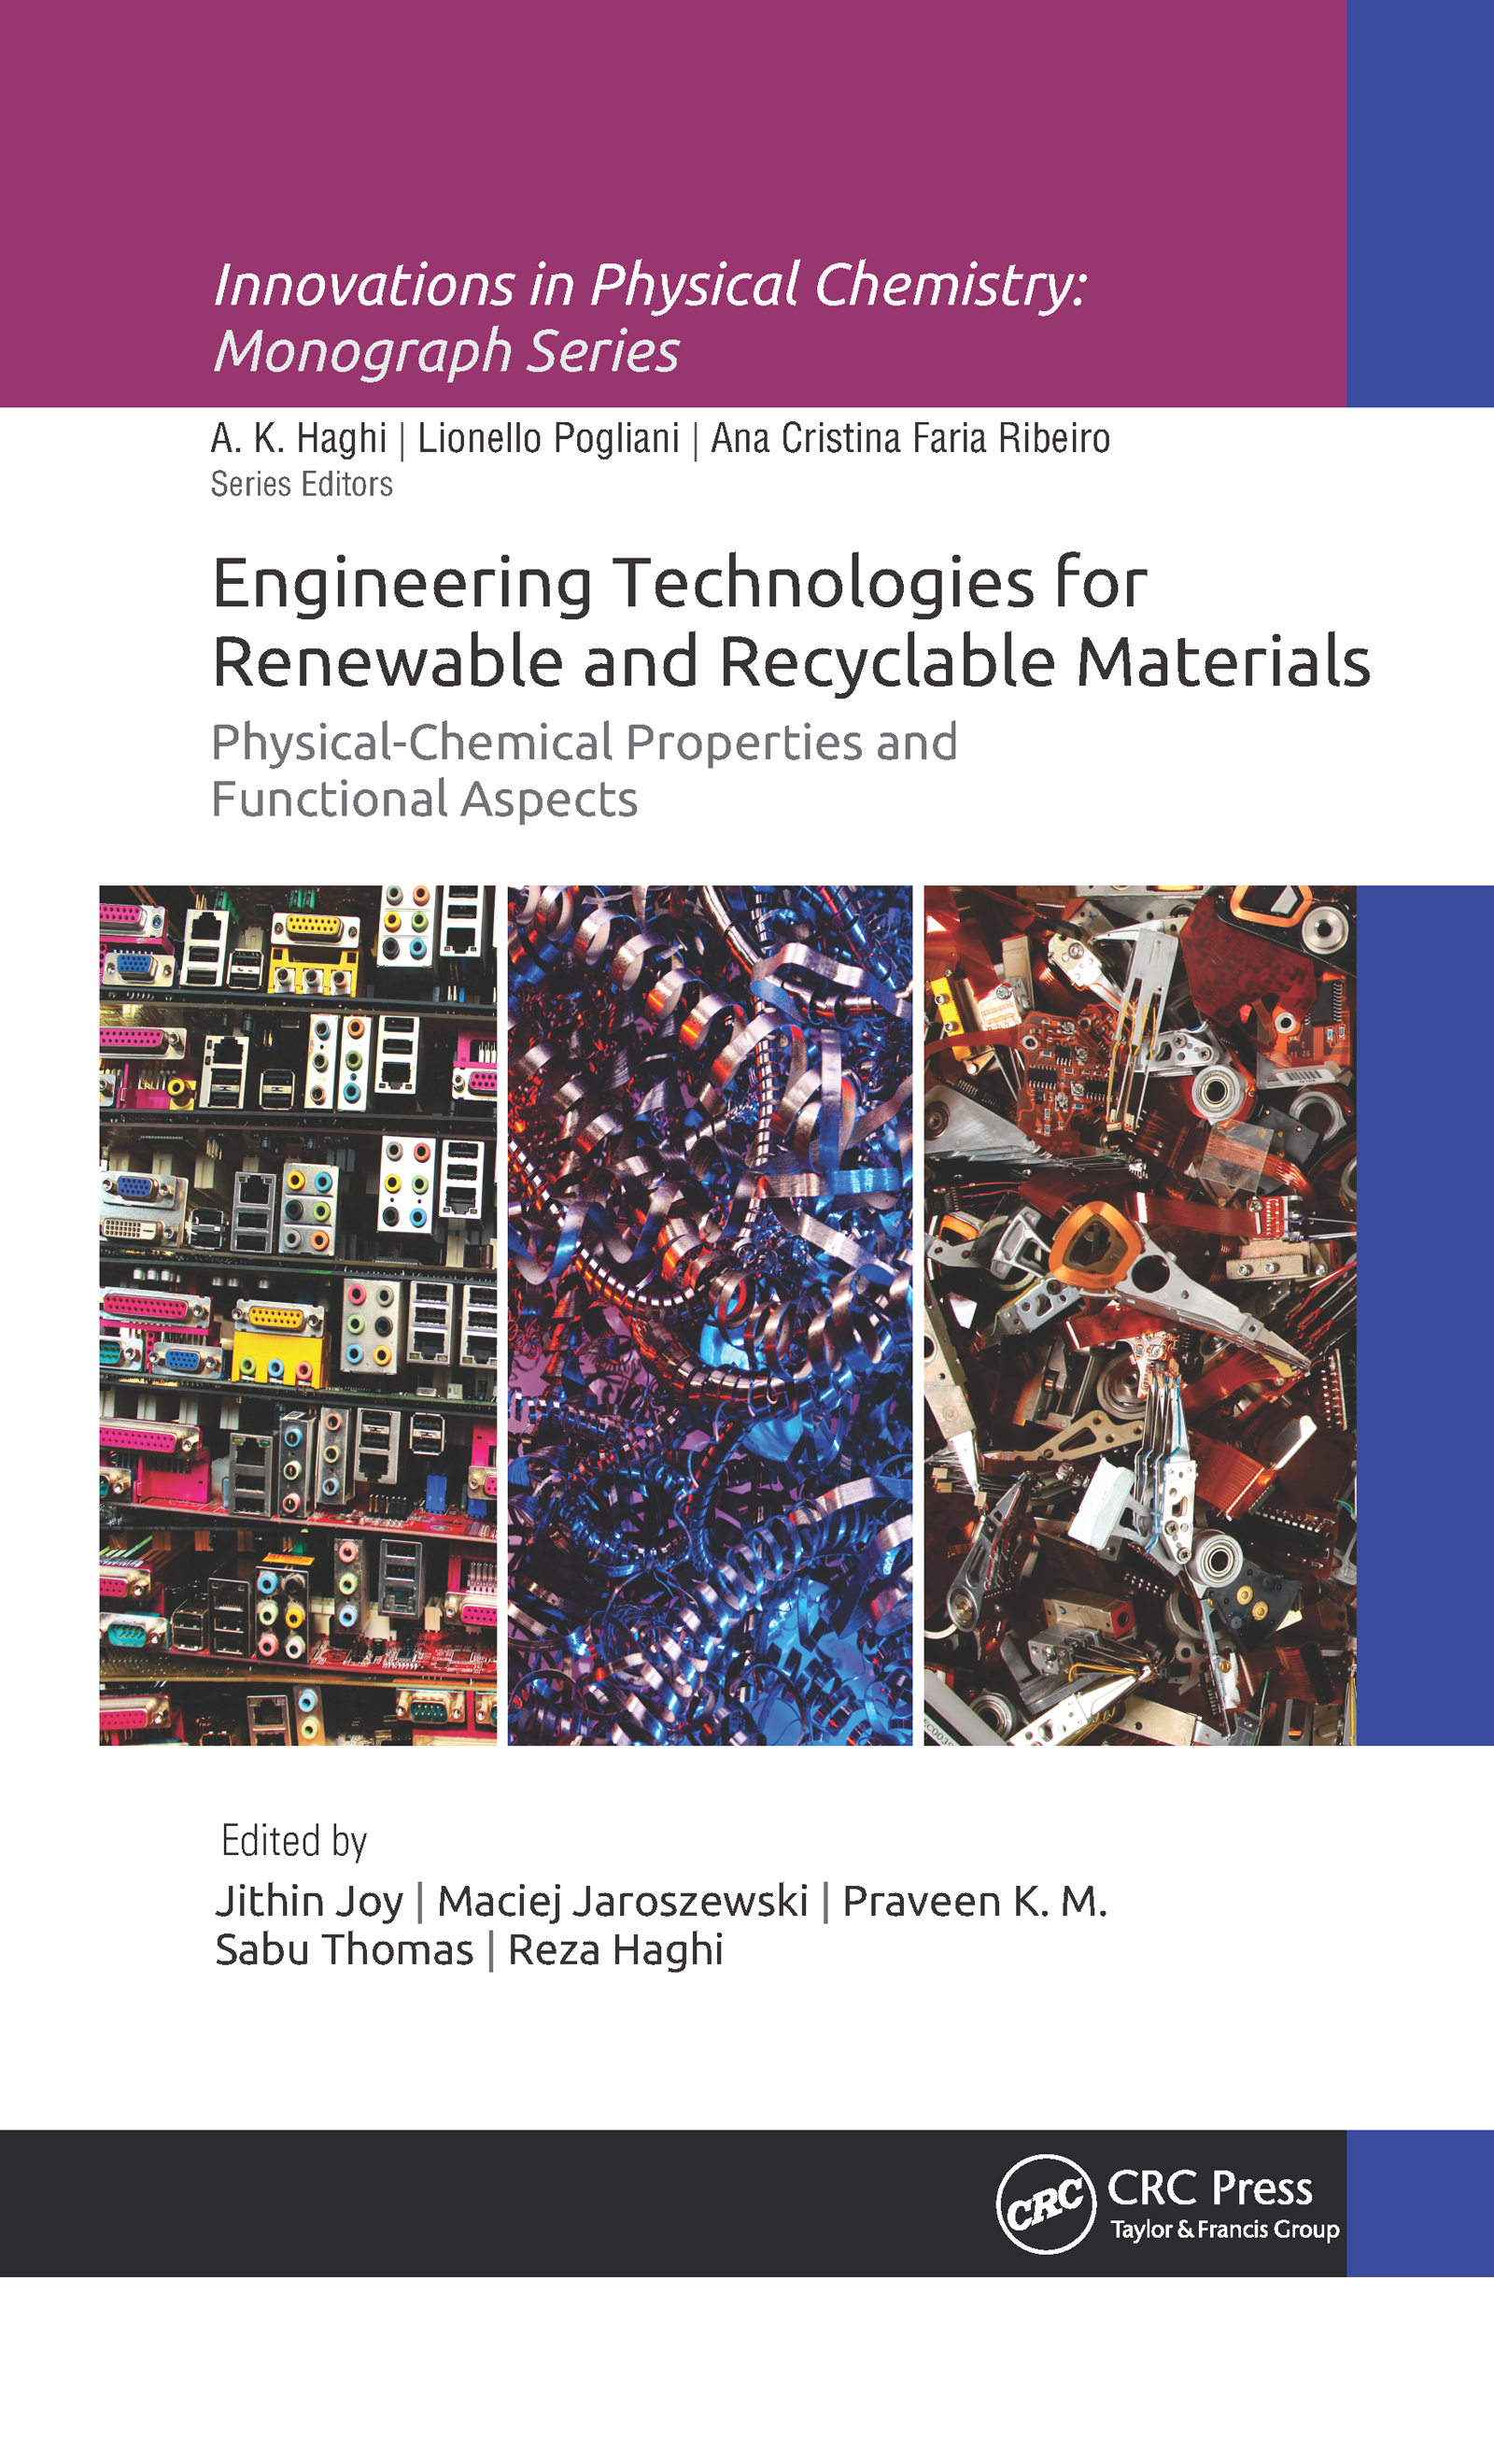 Engineering Technologies for Renewable and Recyclable Materials: Physical-Chemical Properties and Functional Aspects book cover